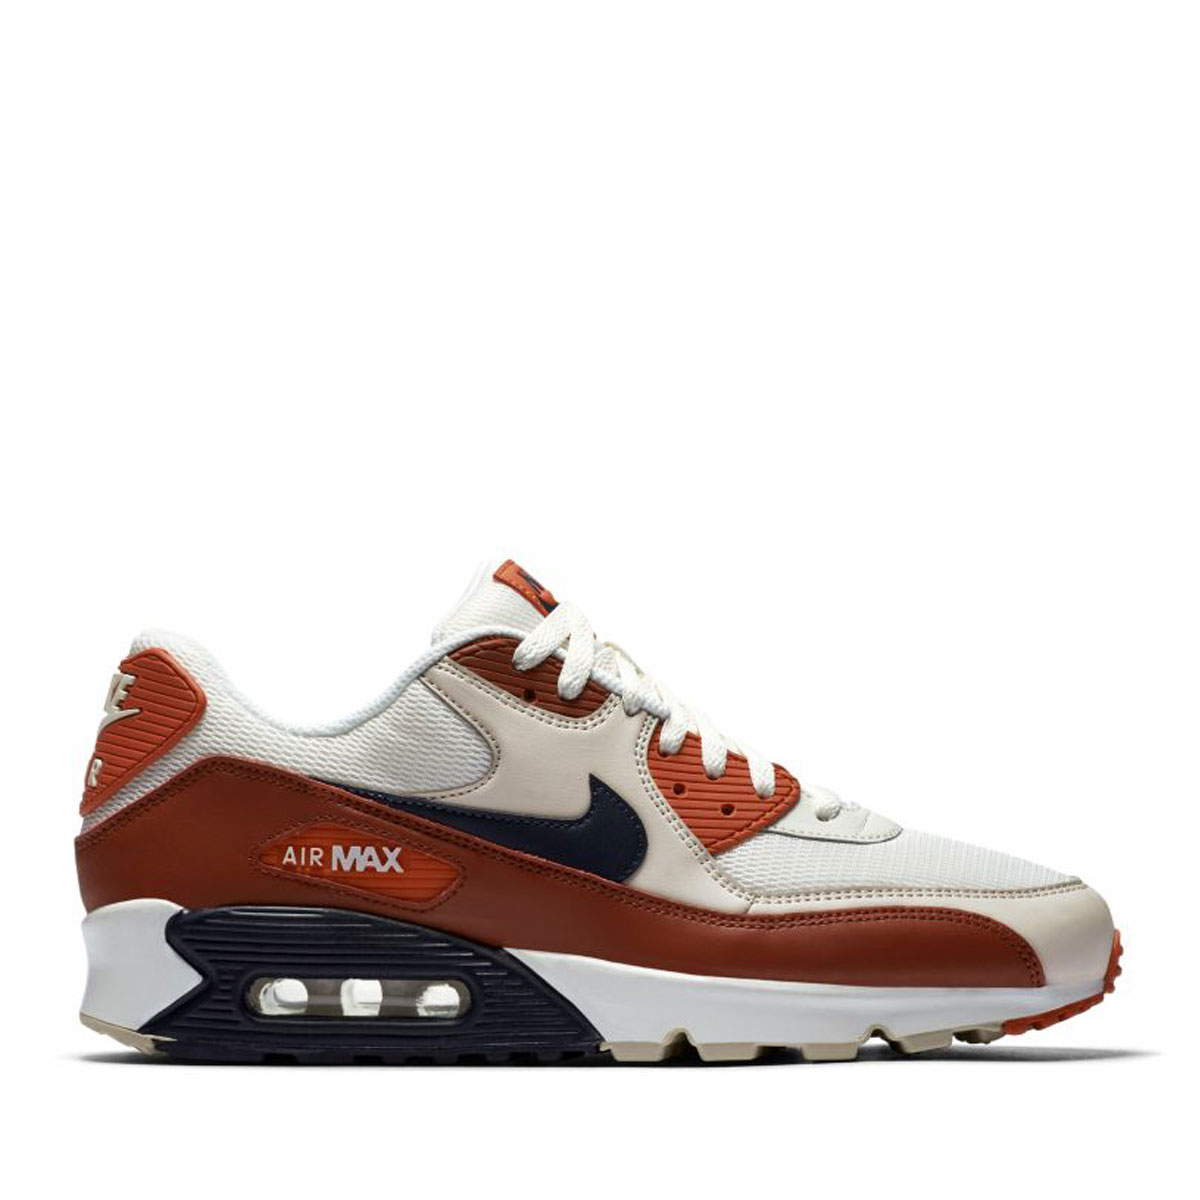 new style 249f0 4425d NIKE AIR MAX 90 ESSENTIAL (Kie Ney AMAX 90 essential) MARS STONE OBSIDIAN- VINTAGE CORAL 18SS-I